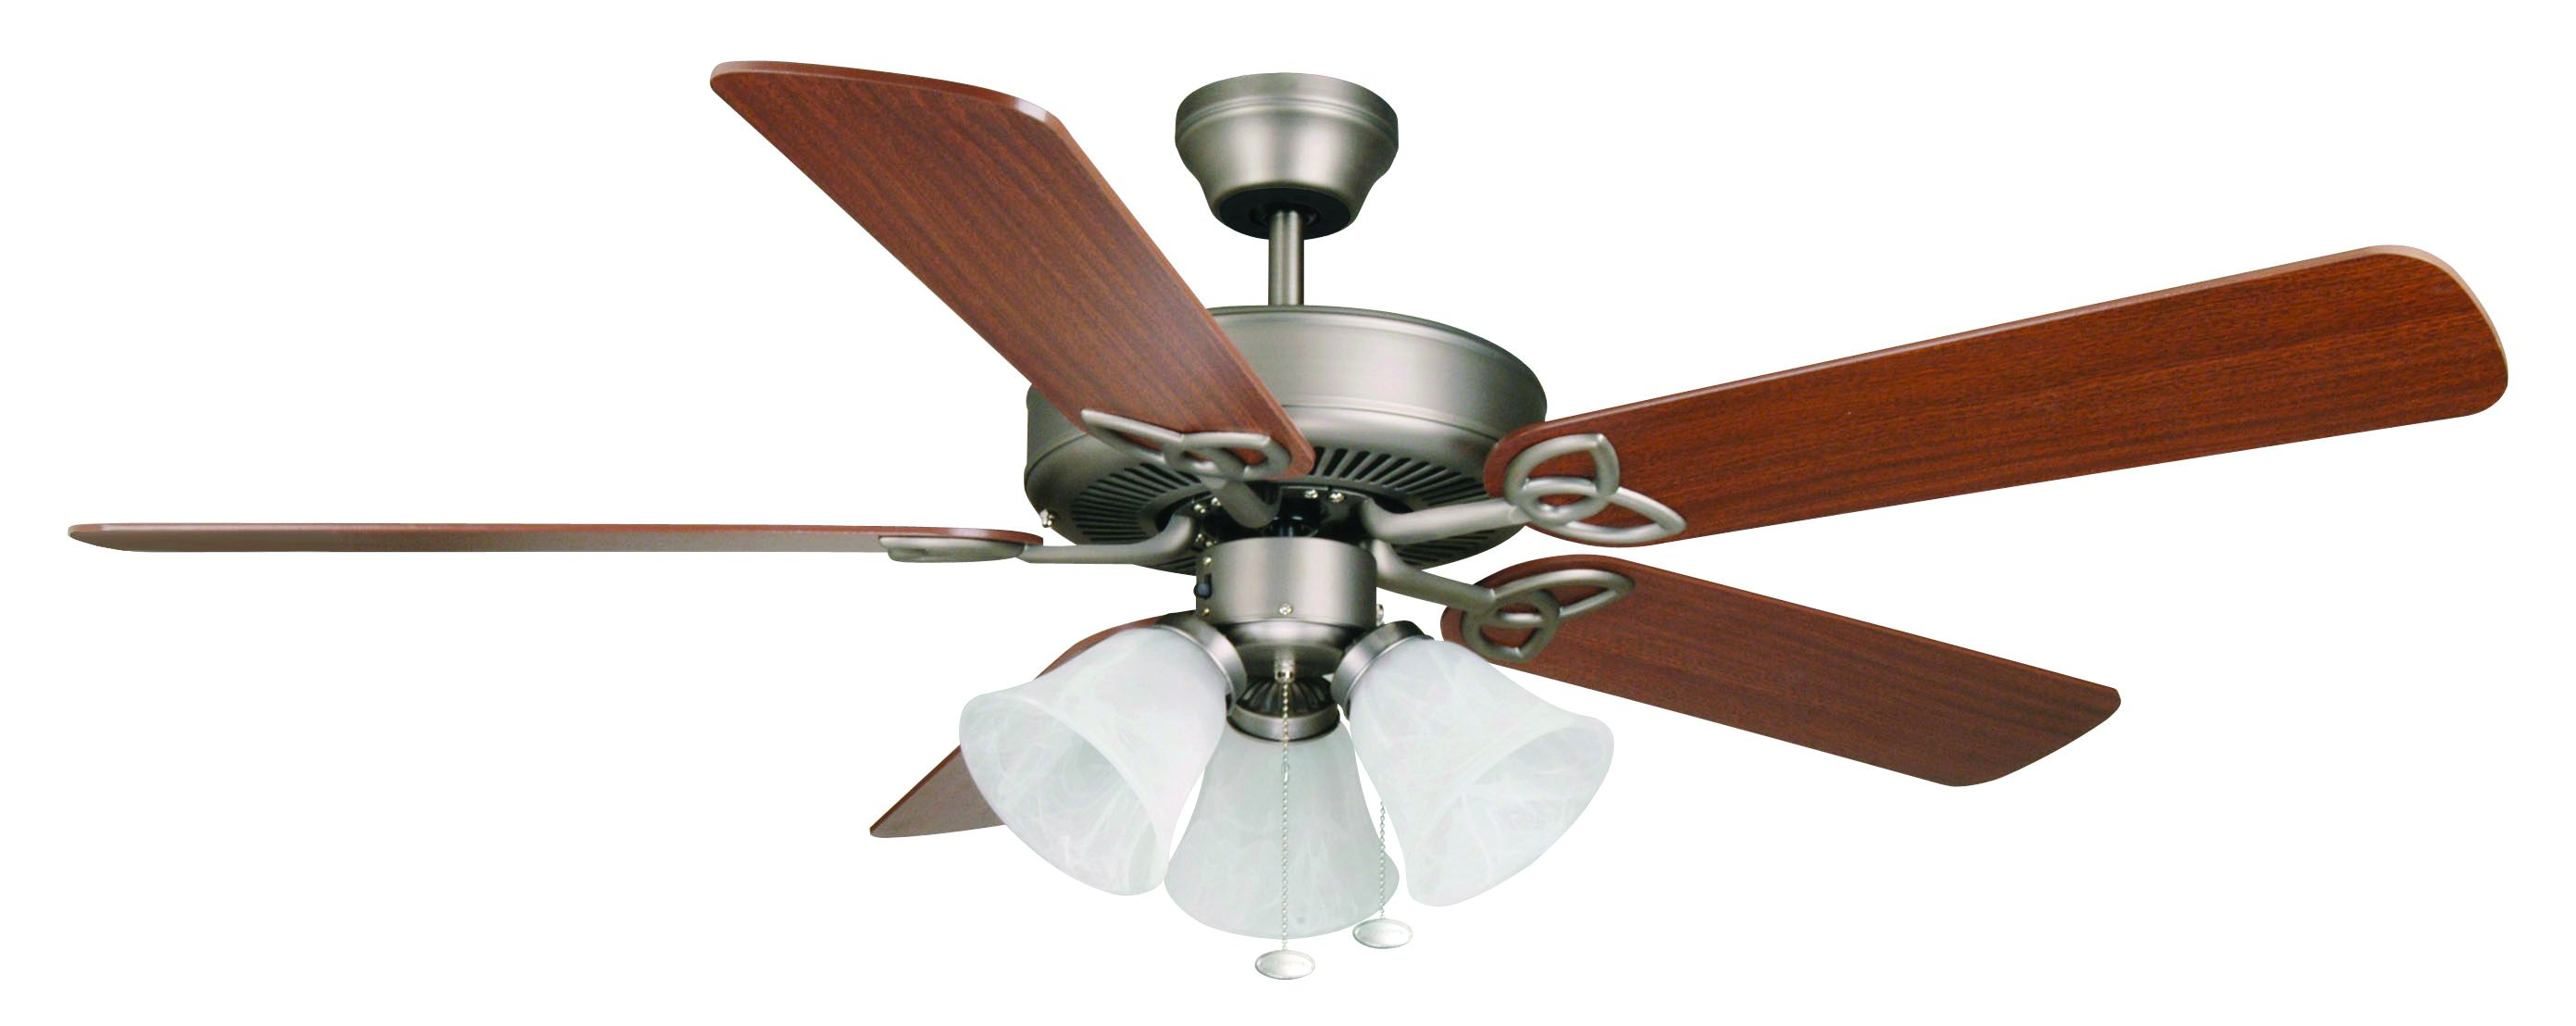 Lighting ceiling fans ez install murray supply company 3300070 52 ceiling fan ez install bld52an5c3 52 5 blade fan ant nickel walabaster glass 3 light aloadofball Choice Image